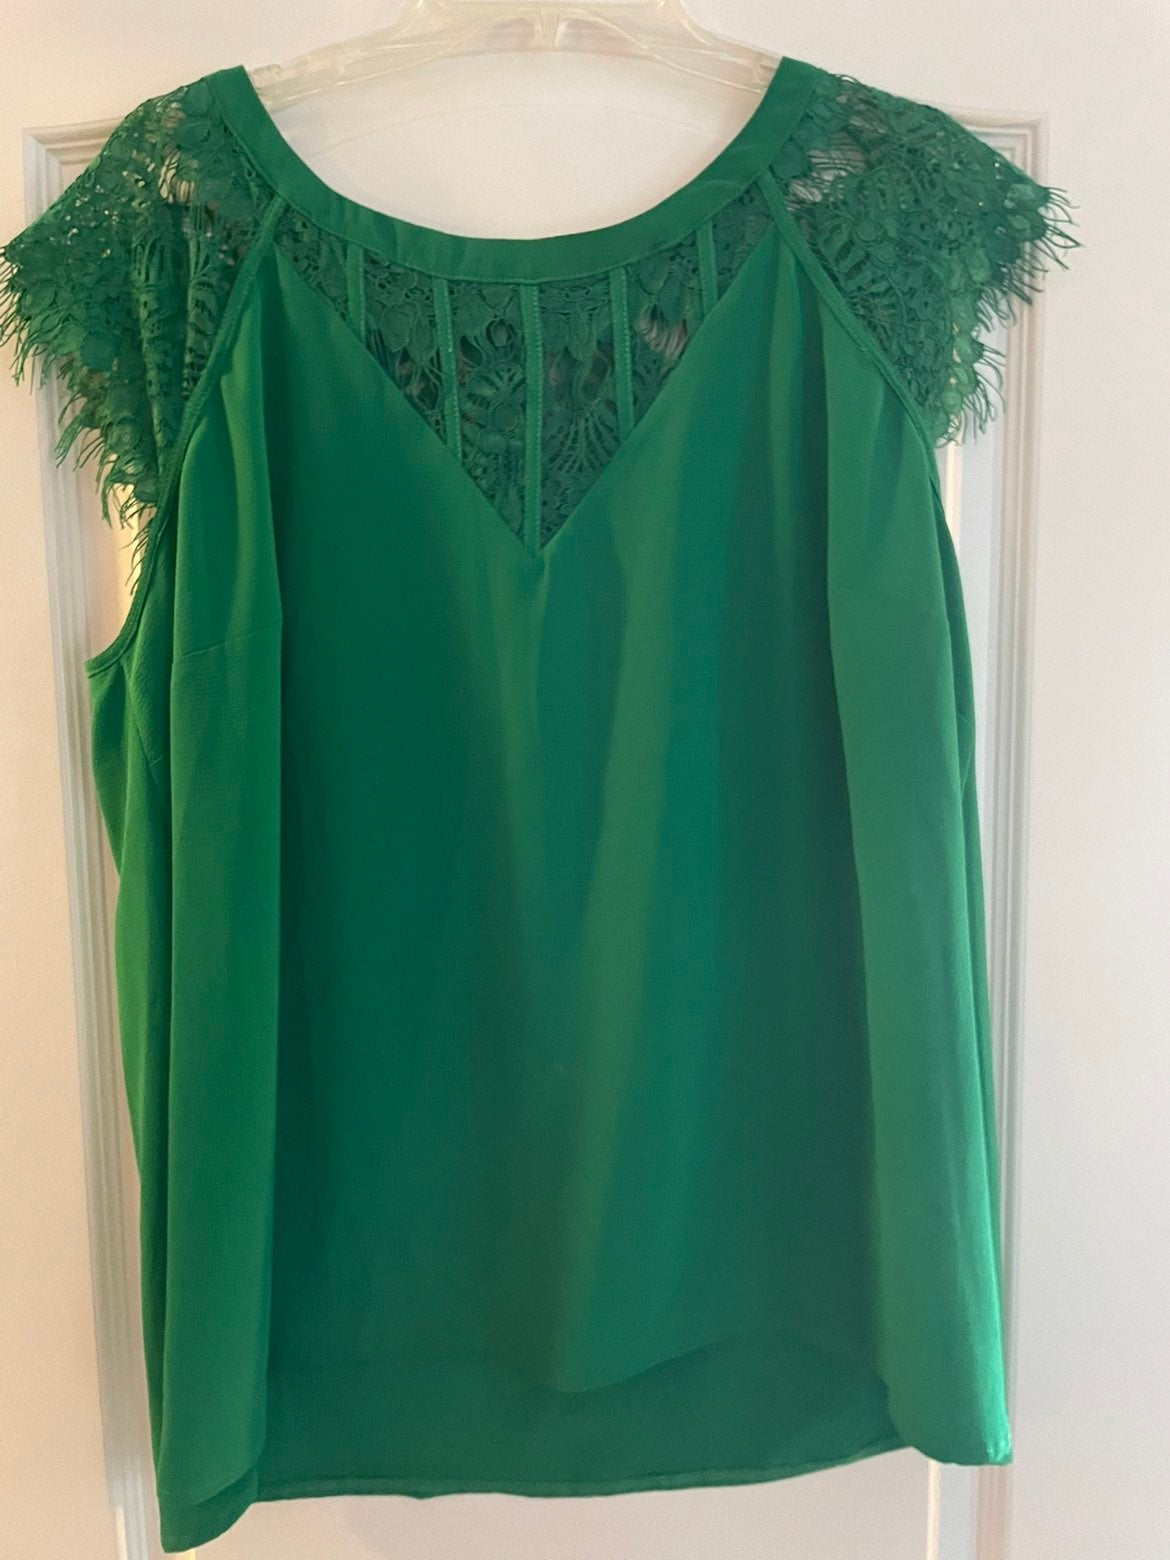 Green lace top from Stitch Fix - 2X